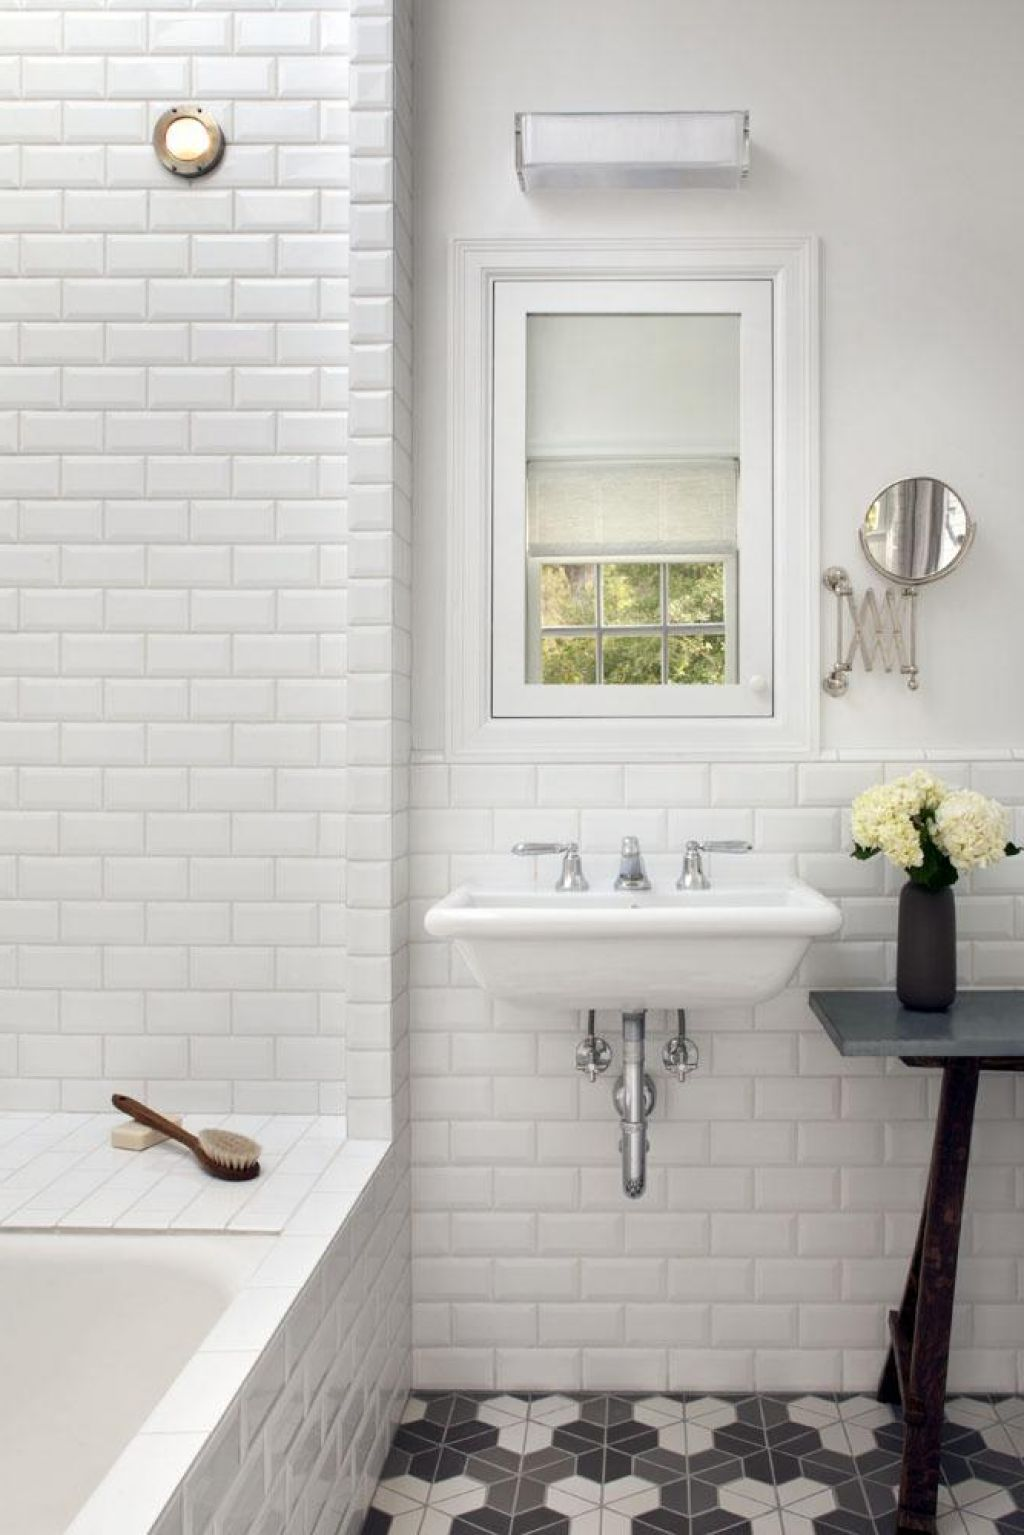 Subway tile bathroom ideas floor city wide kitchen and bath nice tile bathroom backsplash in make unique bathroom with subway tile bathroom backsplash with simple bathtub and bath vanity dailygadgetfo Gallery